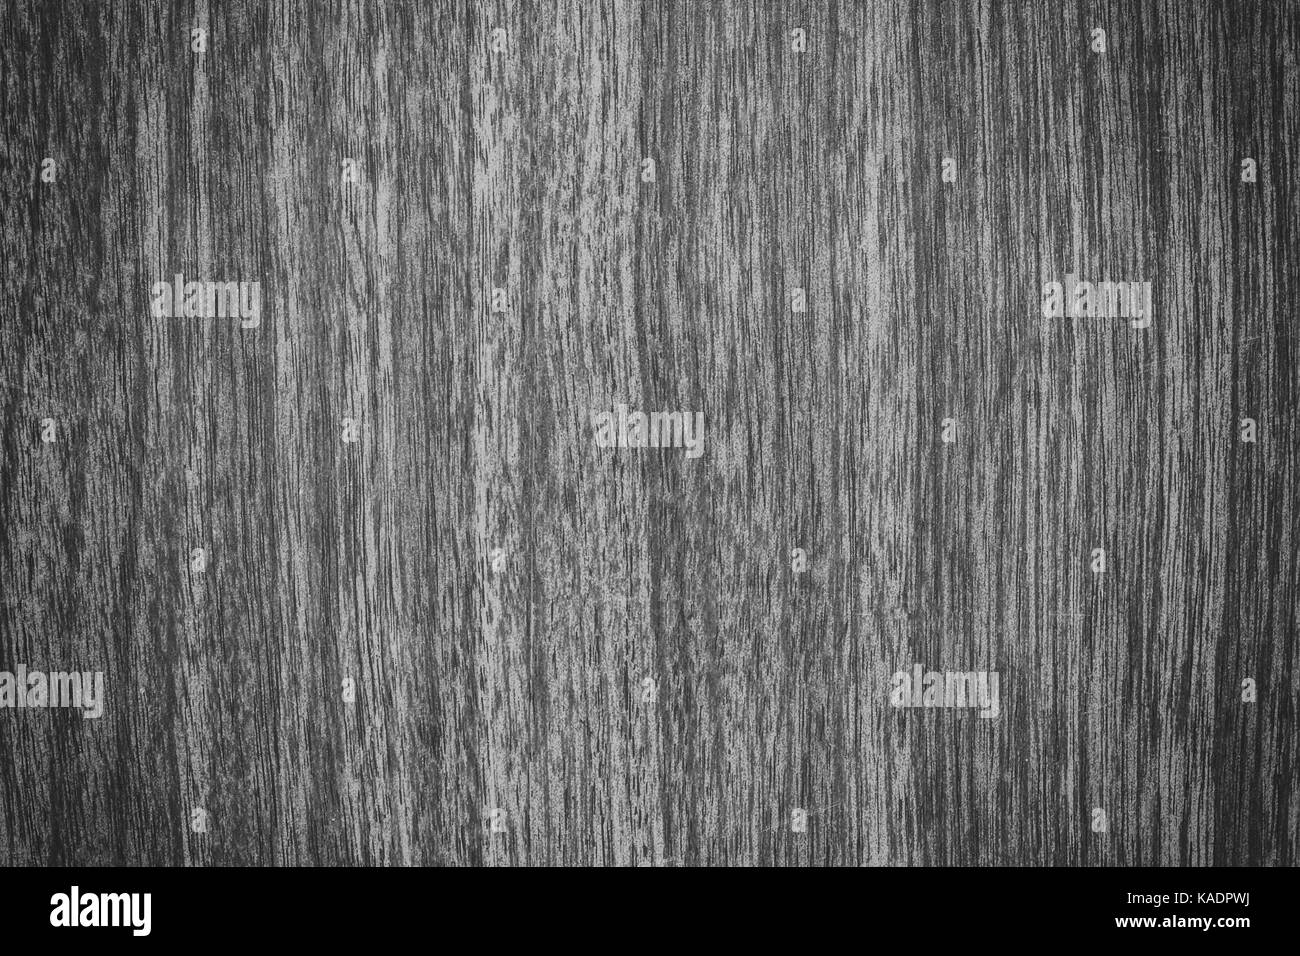 White wood table texture - Abstract Rustic Surface Dark Wood Table Texture Background Close Up Rustic Dark Wall Made Of White Wood Table Planks Texture Rustic Dark Wood Table